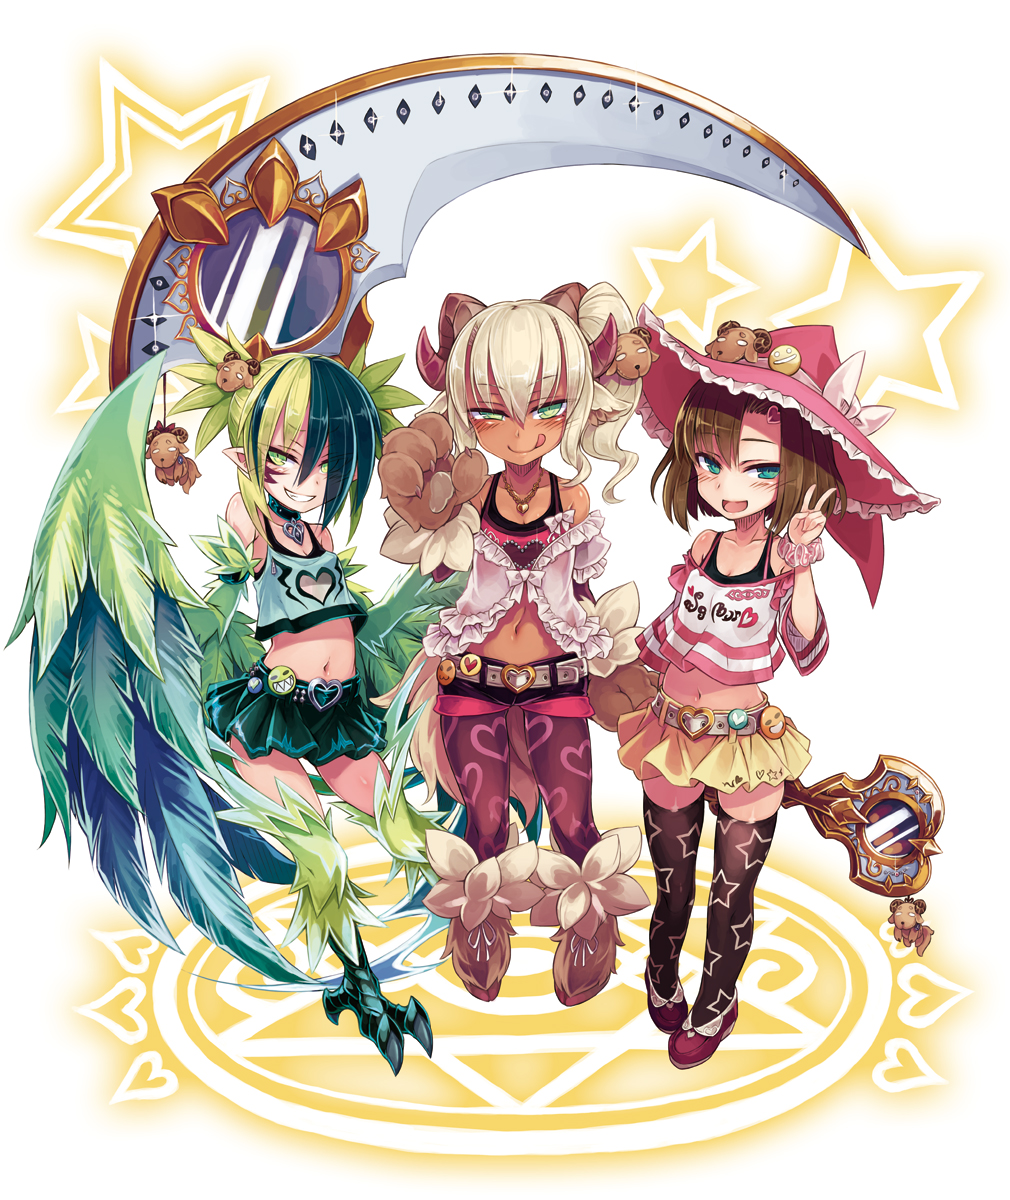 3girls :d :q alternate_design aqua_eyes asymmetrical_bangs badge bangs baphomet_(monster_girl_encyclopedia) bare_shoulders belt belt_buckle blonde_hair blush brown_hair buckle claws collarbone commentary_request crop_top dark-skinned_female dark_skin eyebrows_visible_through_hair eyes_visible_through_hair facial_mark feathered_wings frilled_hat frills full_body green_eyes green_hair grin hair_between_eyes hair_over_one_eye hat heart heart_buckle heart_print highres hooves horns jewelry kenkou_cross legwear_under_shorts long_hair looking_at_viewer midriff miniskirt monster_girl_encyclopedia multicolored_hair multiple_girls naughty_face navel necklace official_art open_mouth oversized_object pantyhose paws print_legwear scythe short_hair short_shorts shorts side_ponytail simple_background skirt smile star_(symbol) star_print starry_background thigh-highs thunderbird_(monster_girl_encyclopedia) tongue tongue_out two-tone_hair uneven_eyes v winged_arms wings witch_(monster_girl_encyclopedia) witch_hat